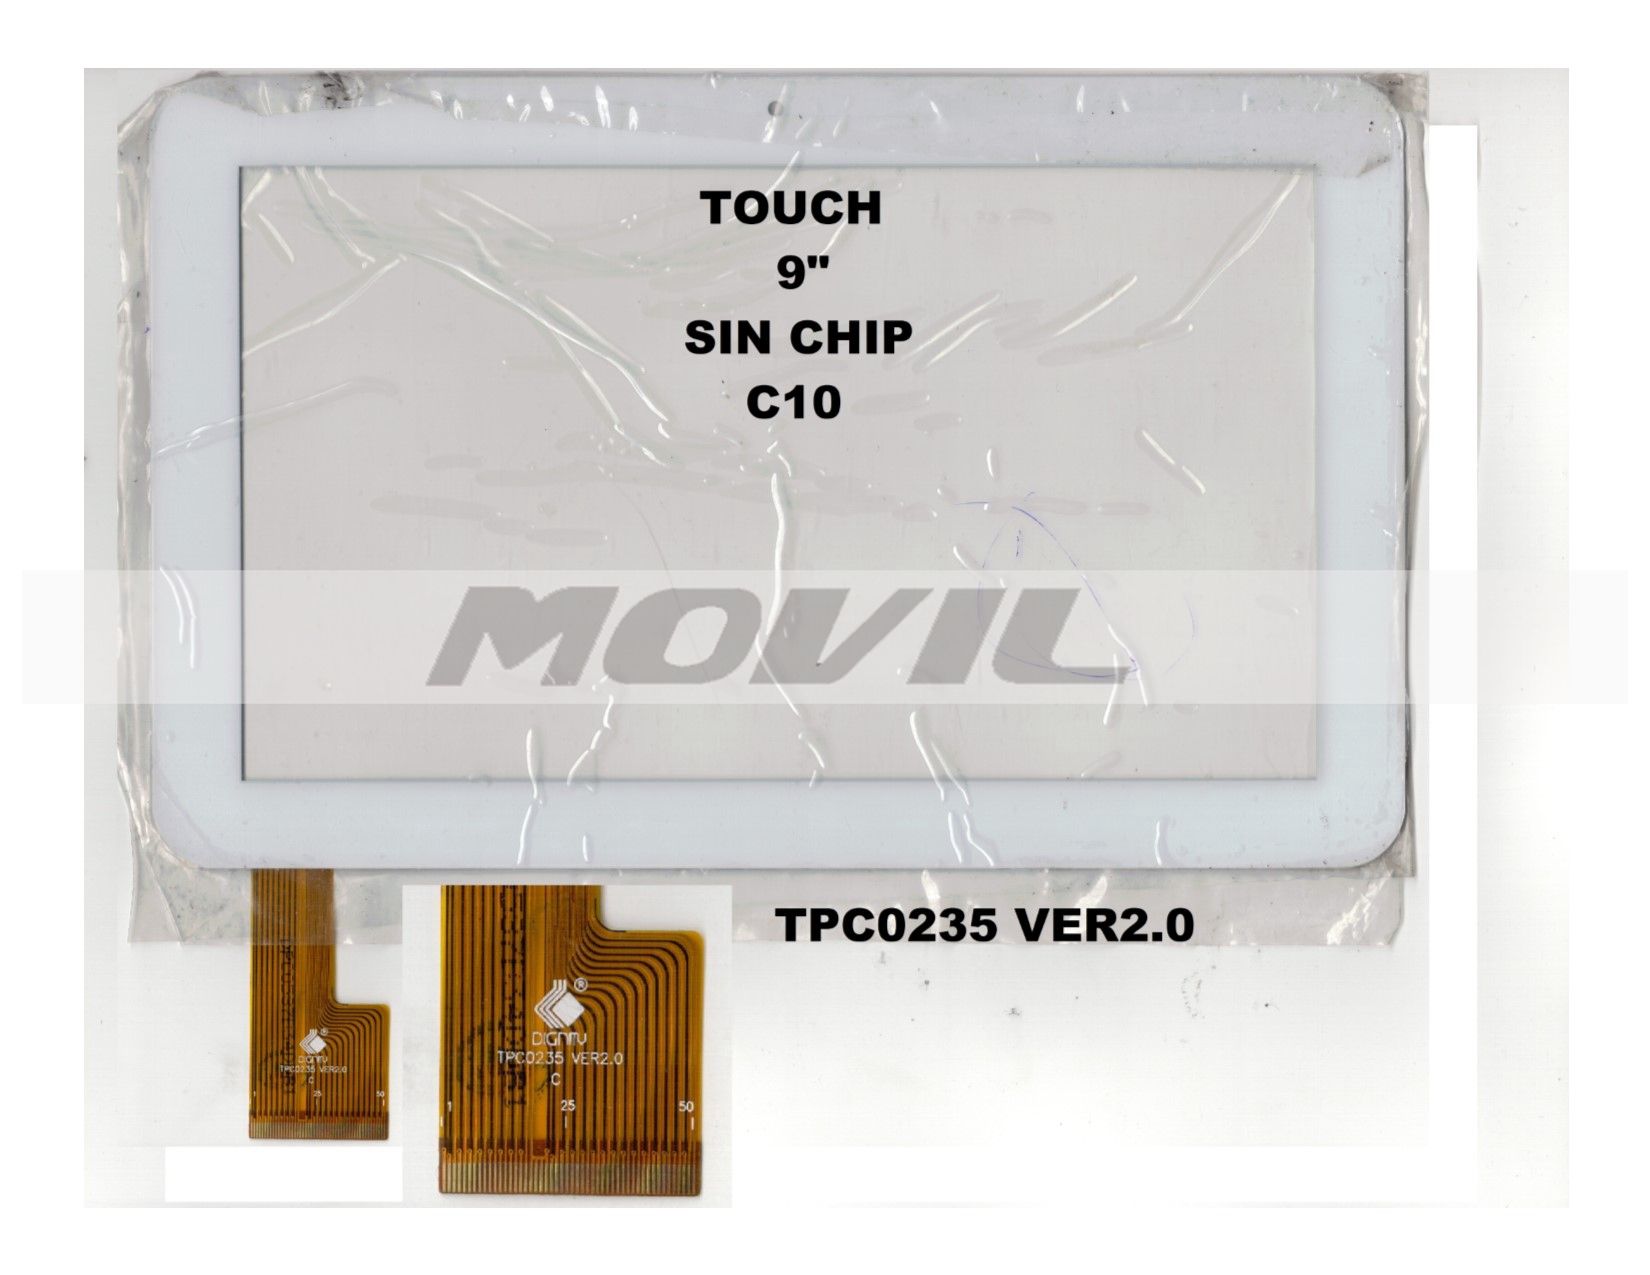 Touch tactil para tablet flex 9 inch SIN CHIP C10 TPC0235 VER2.0